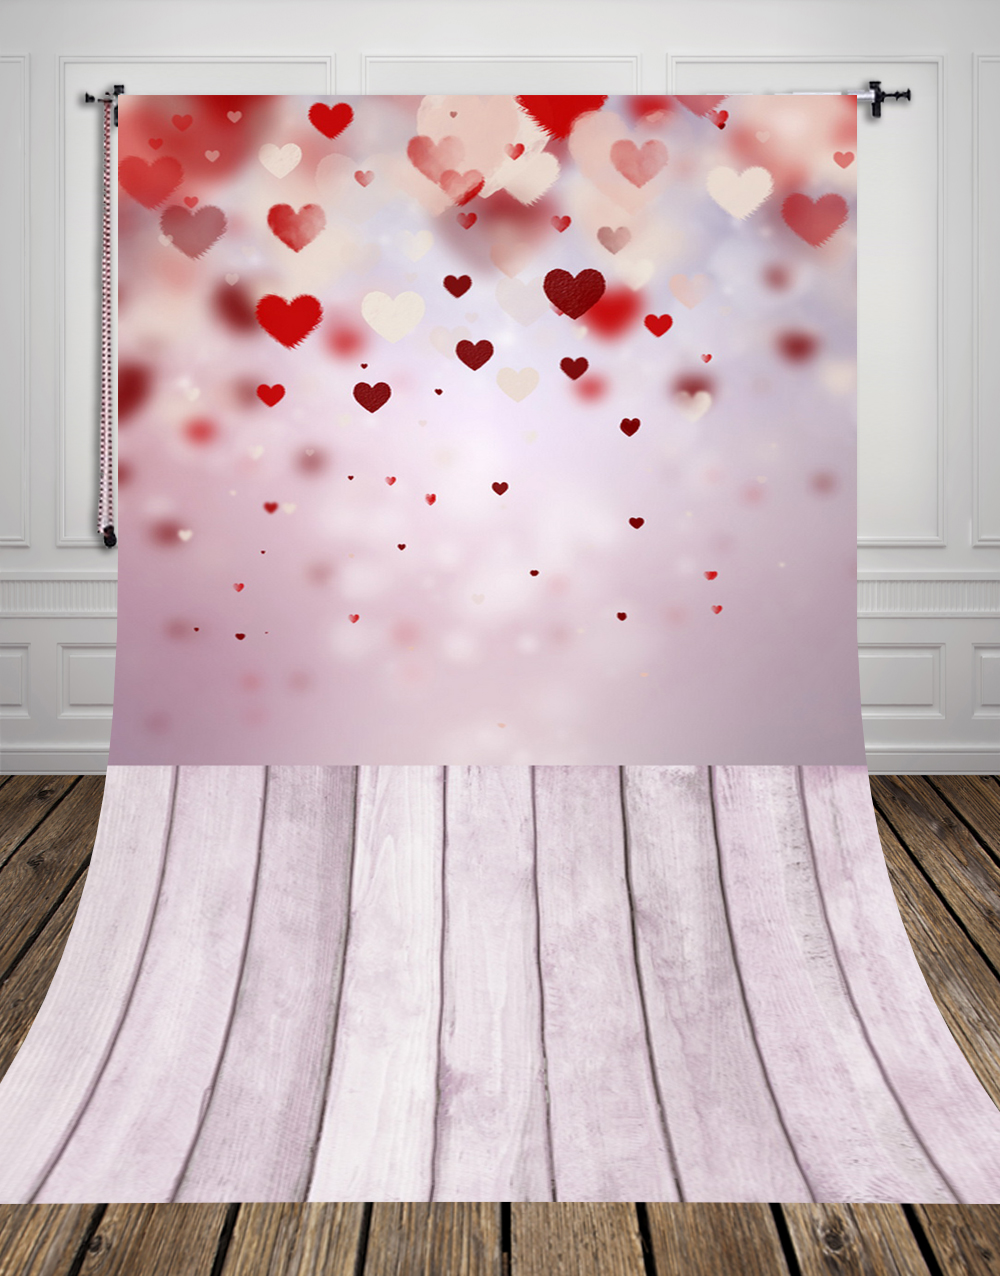 HUAYI Valentine's day photography backdrop thin Art Fabric newborn pet gift photography background 5x10ft D-9391